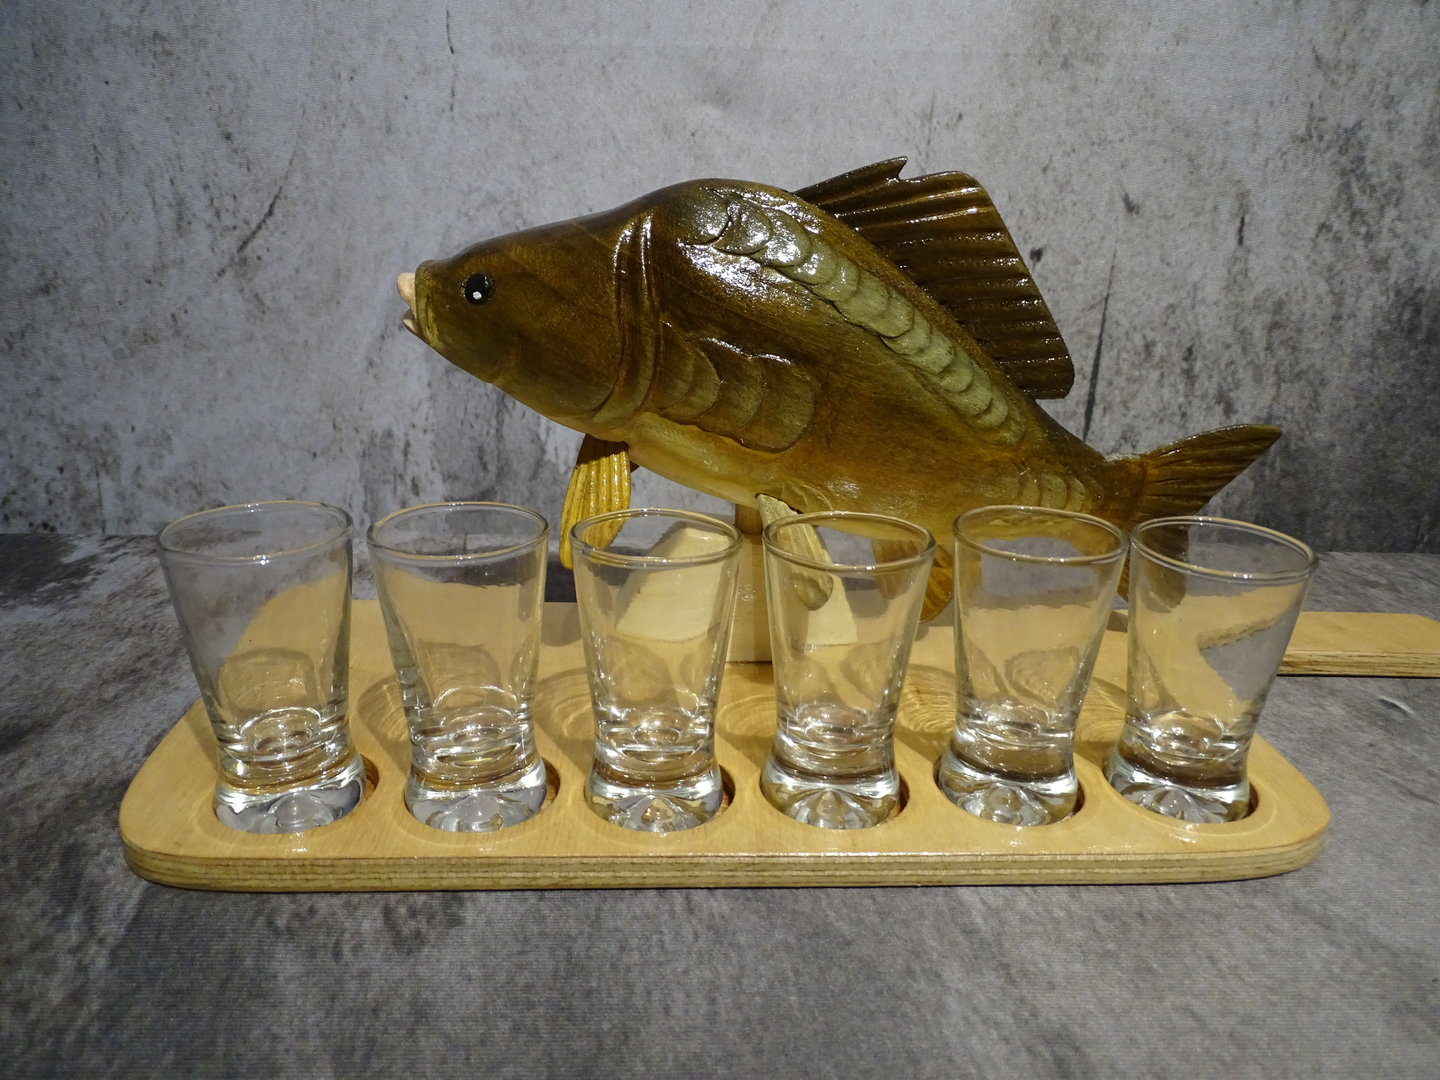 Mirror carp with small tray and 6 glasses